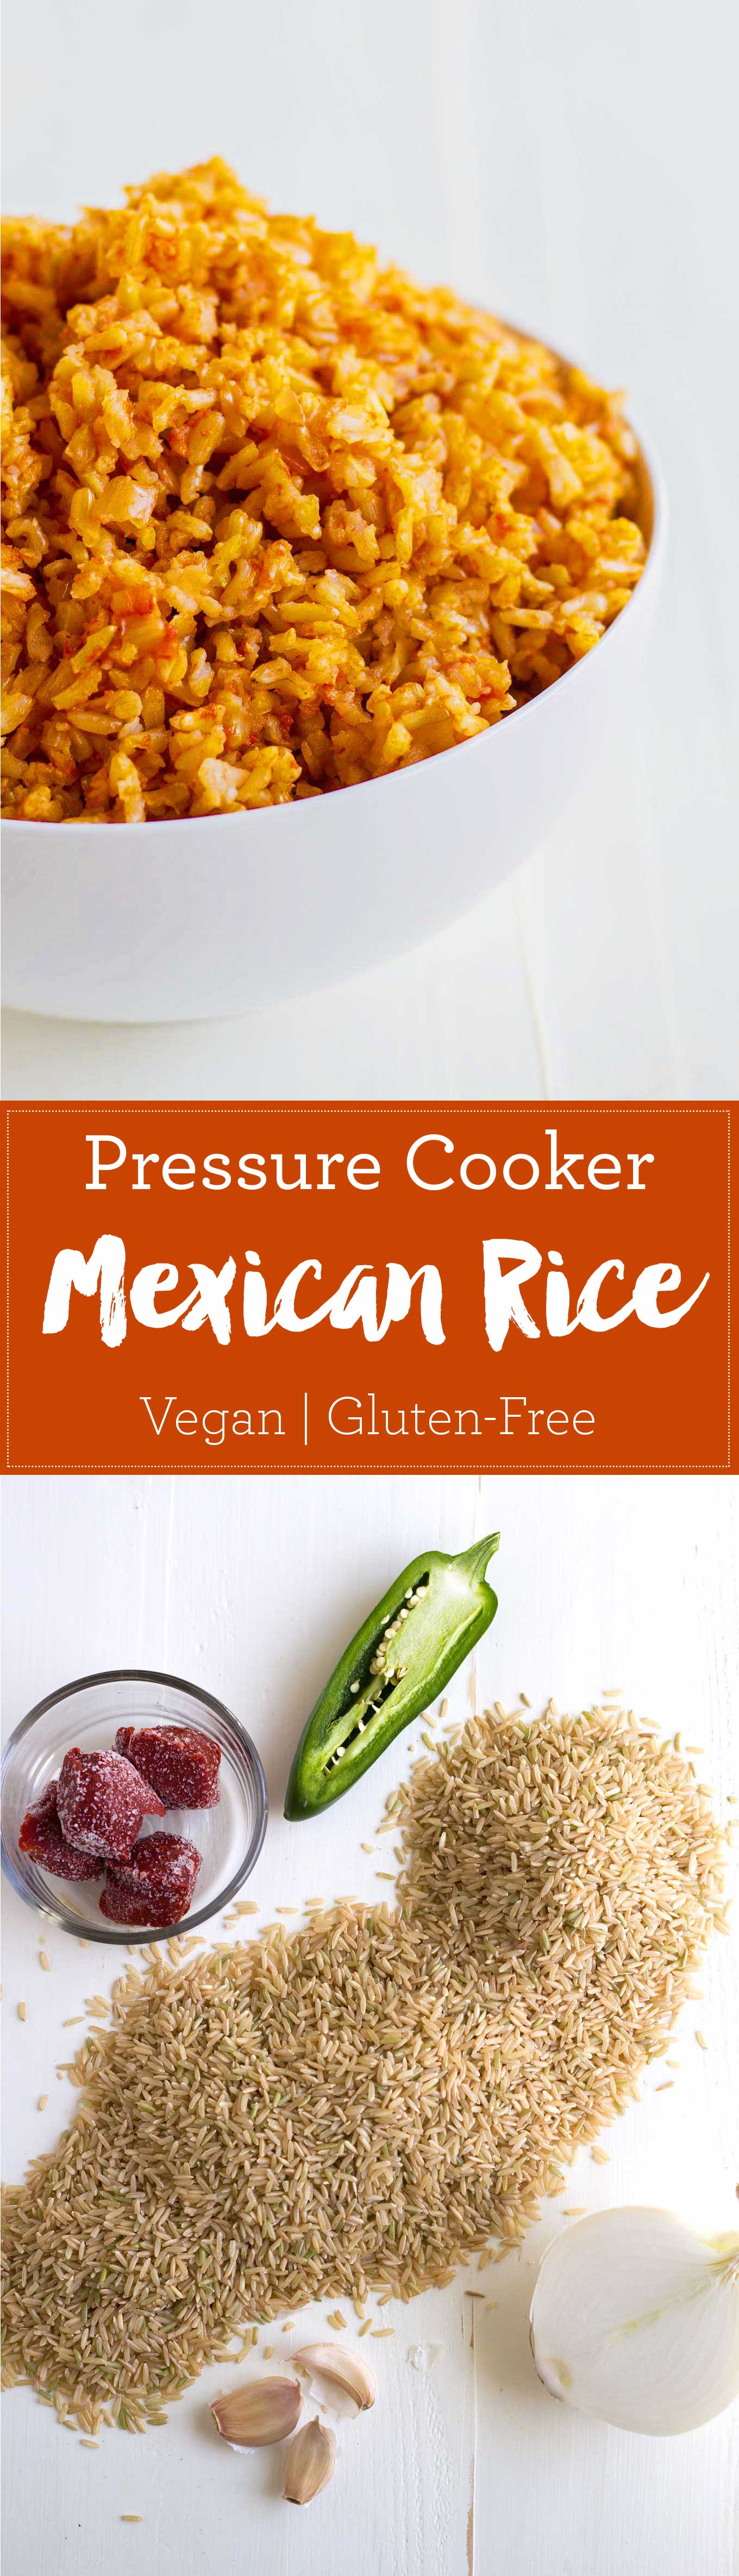 Make foolproof Mexican rice in a pressure cooker! Methods for brown and white rice included. Vegan, gluten-free. | https://eatwithinyourmeans.com